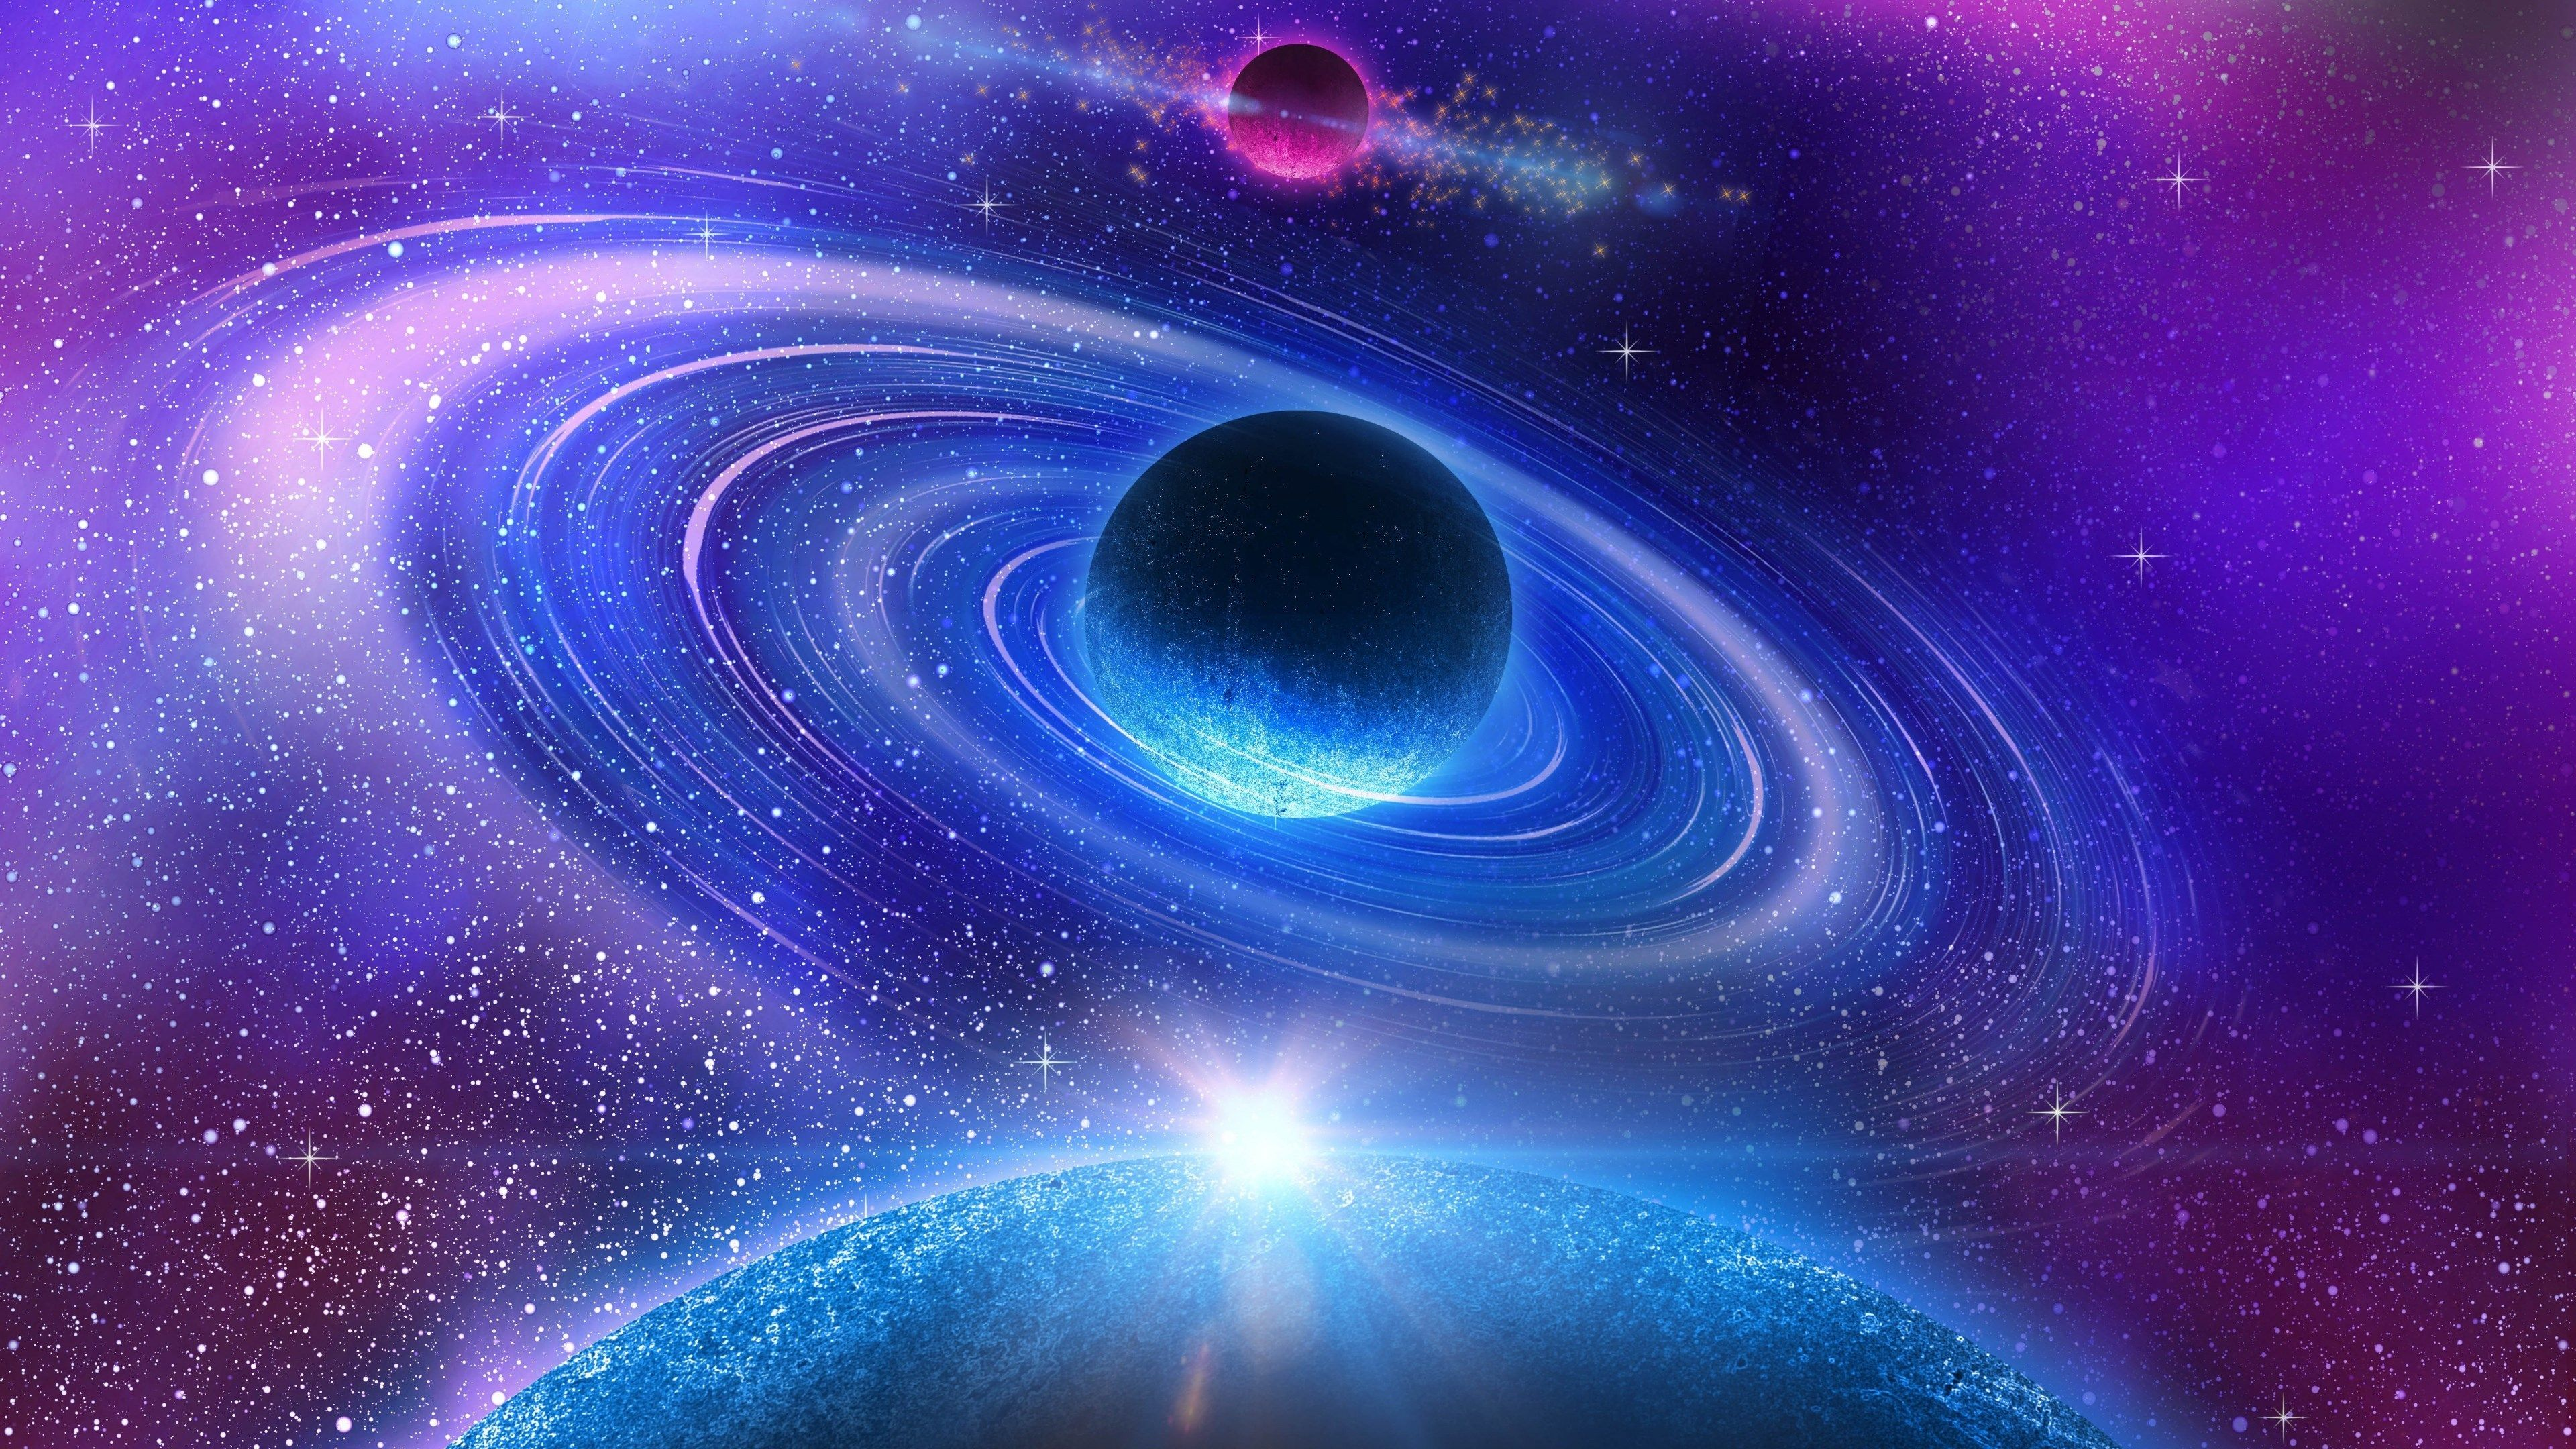 Galaxy Space Wallpaper 4k Apk Download: Image Result For Space Wallpaper 4k